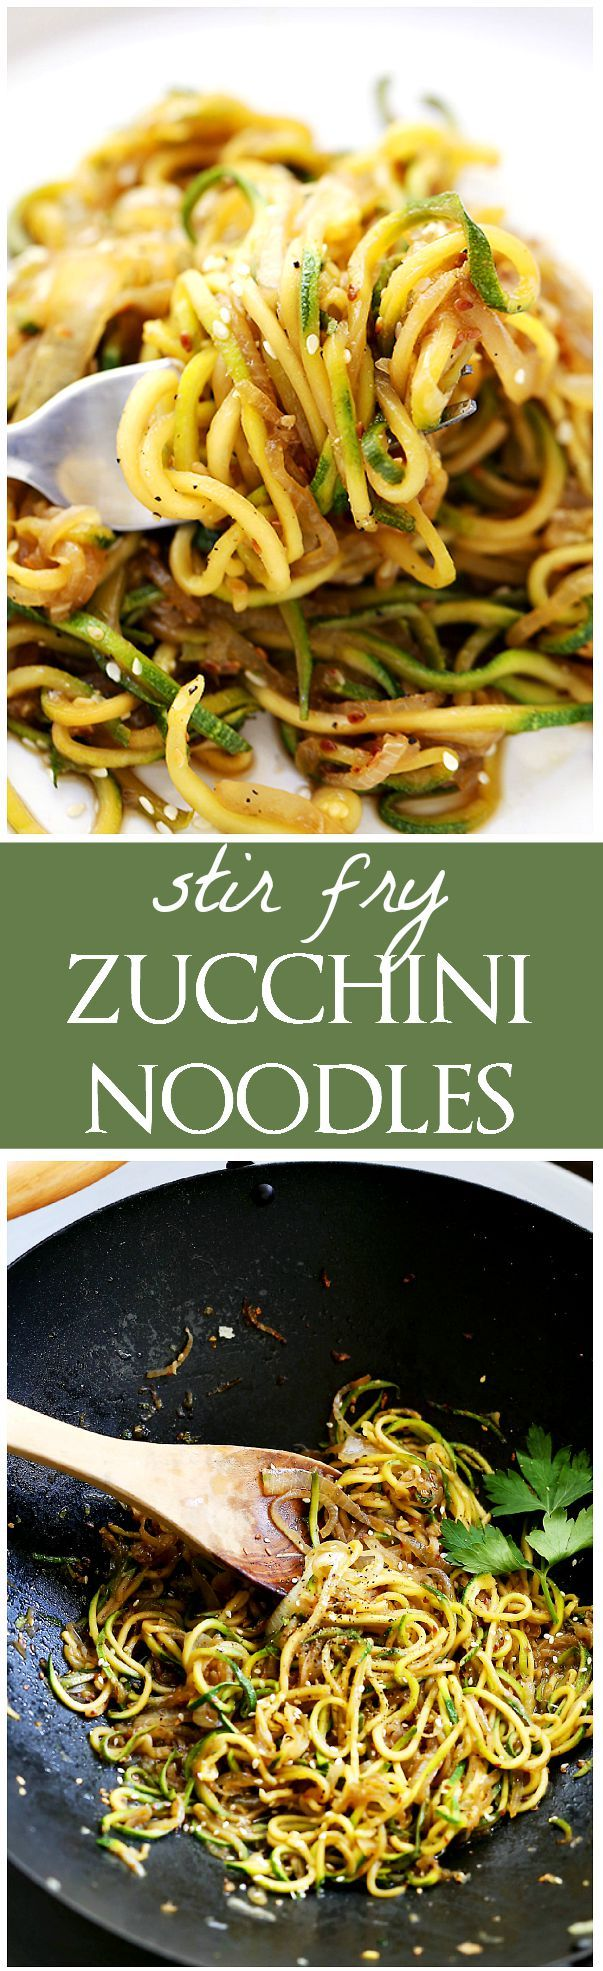 Stir Fry Zucchini Noodles - 2 T vegetable oil, 2 yellow onions, 4 small zucchini, 1 T low sodium soy sauce, 2 T low sodium teriyaki sauce, 1 T sesame seeds